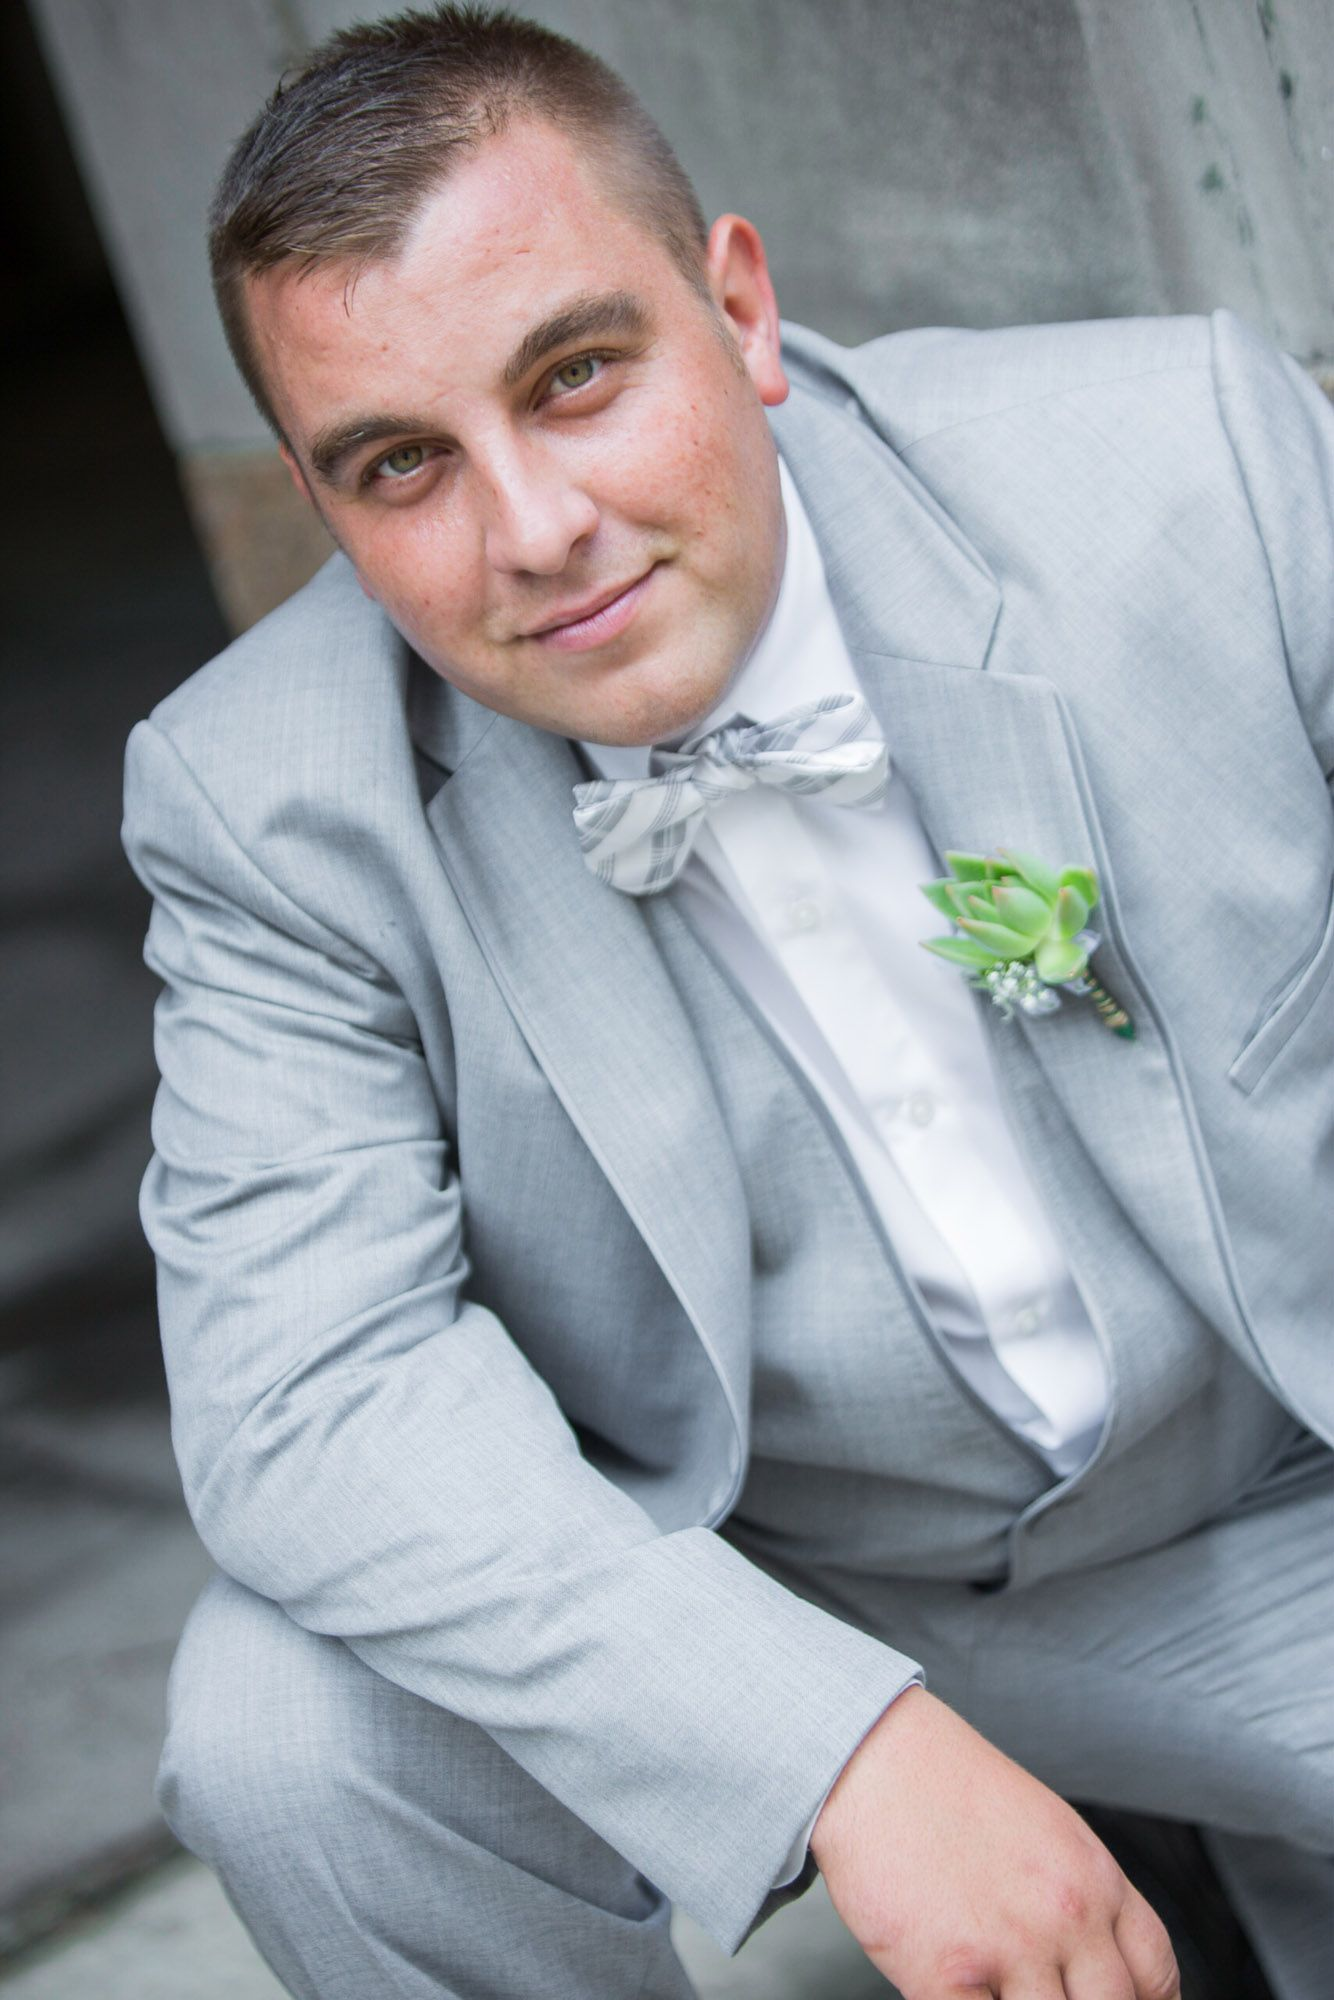 Groom in gray suit portrait | Rush Productions - Groom Solo Photos ...